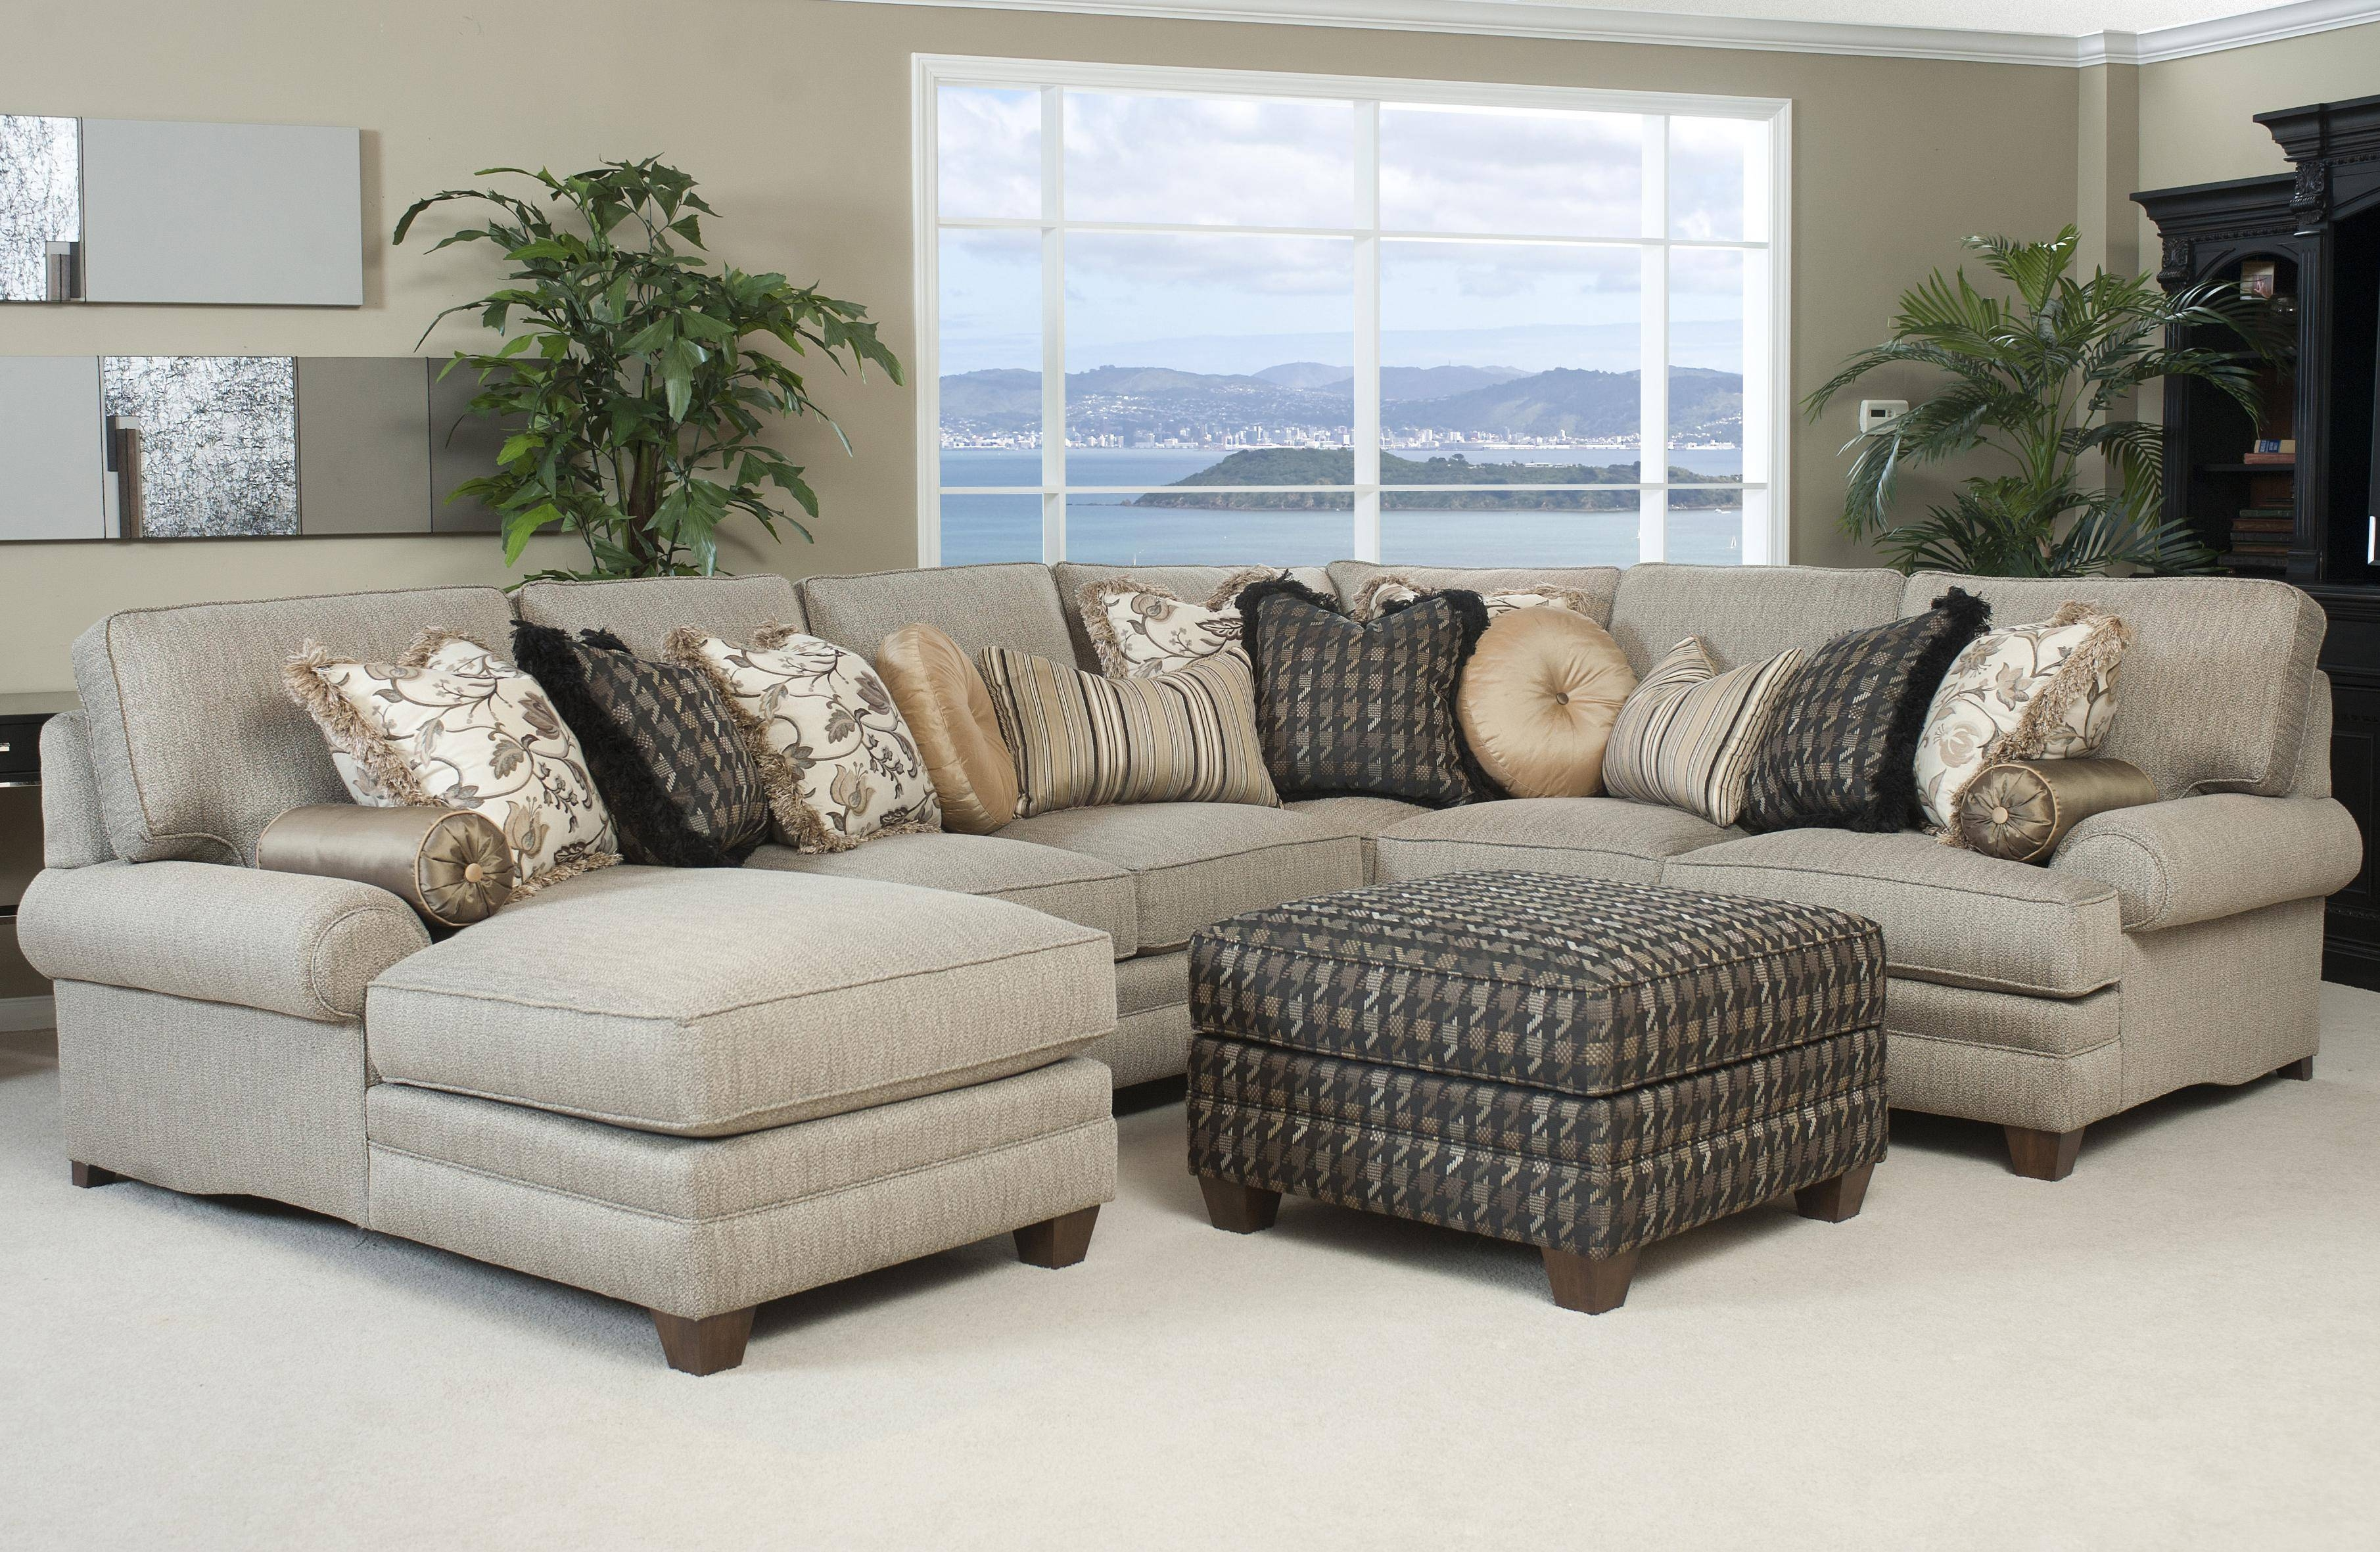 Traditional Styled Sectional Sofa With Comfortable Pillowed Seat inside Traditional Sectional Sofas (Image 24 of 25)